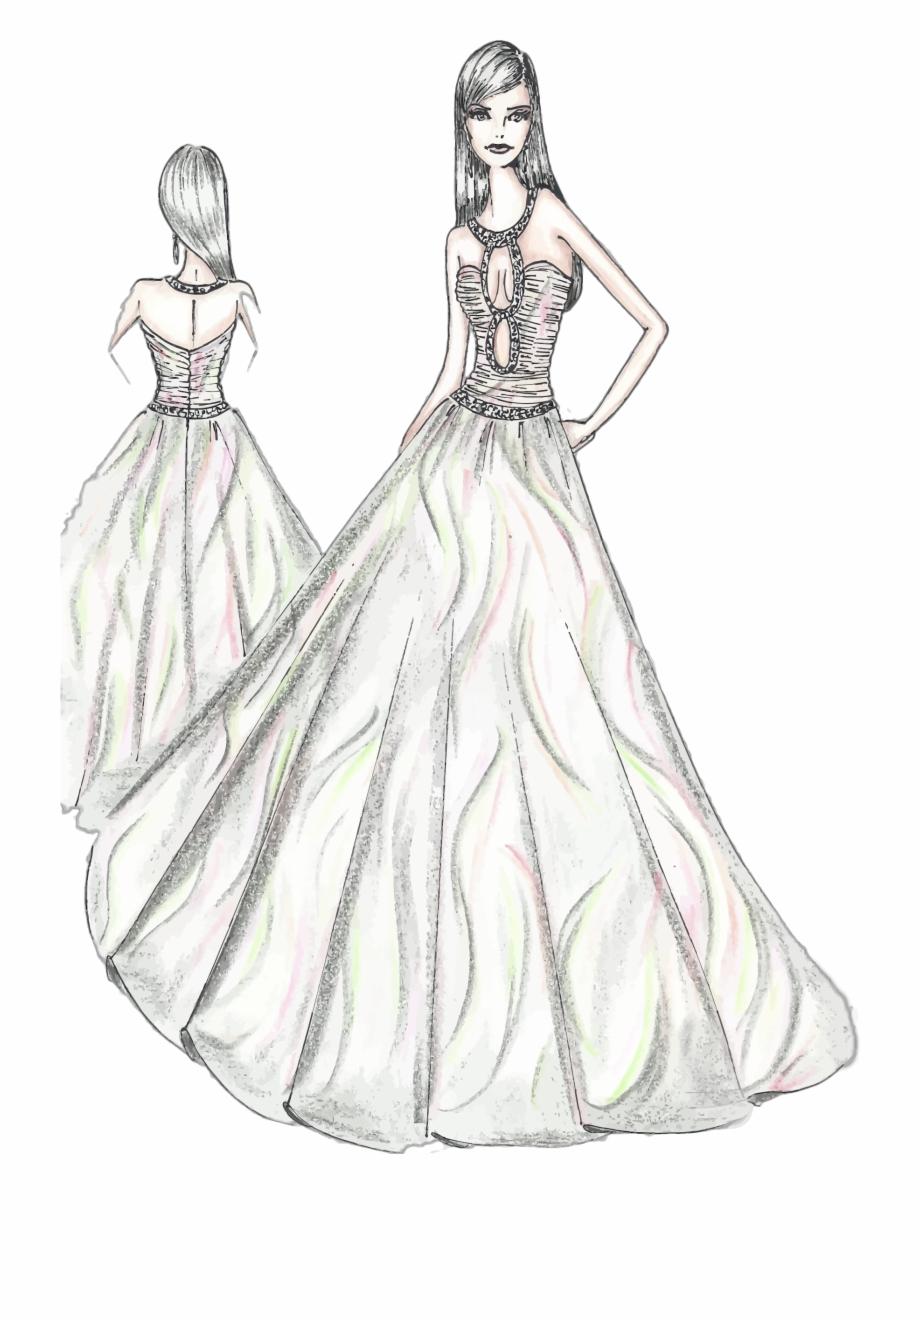 This Free Icons Png Design Of Woman Fashion Dress Sketch Fashion Design Sketches Pdf Transparent Png Download 838823 Vippng